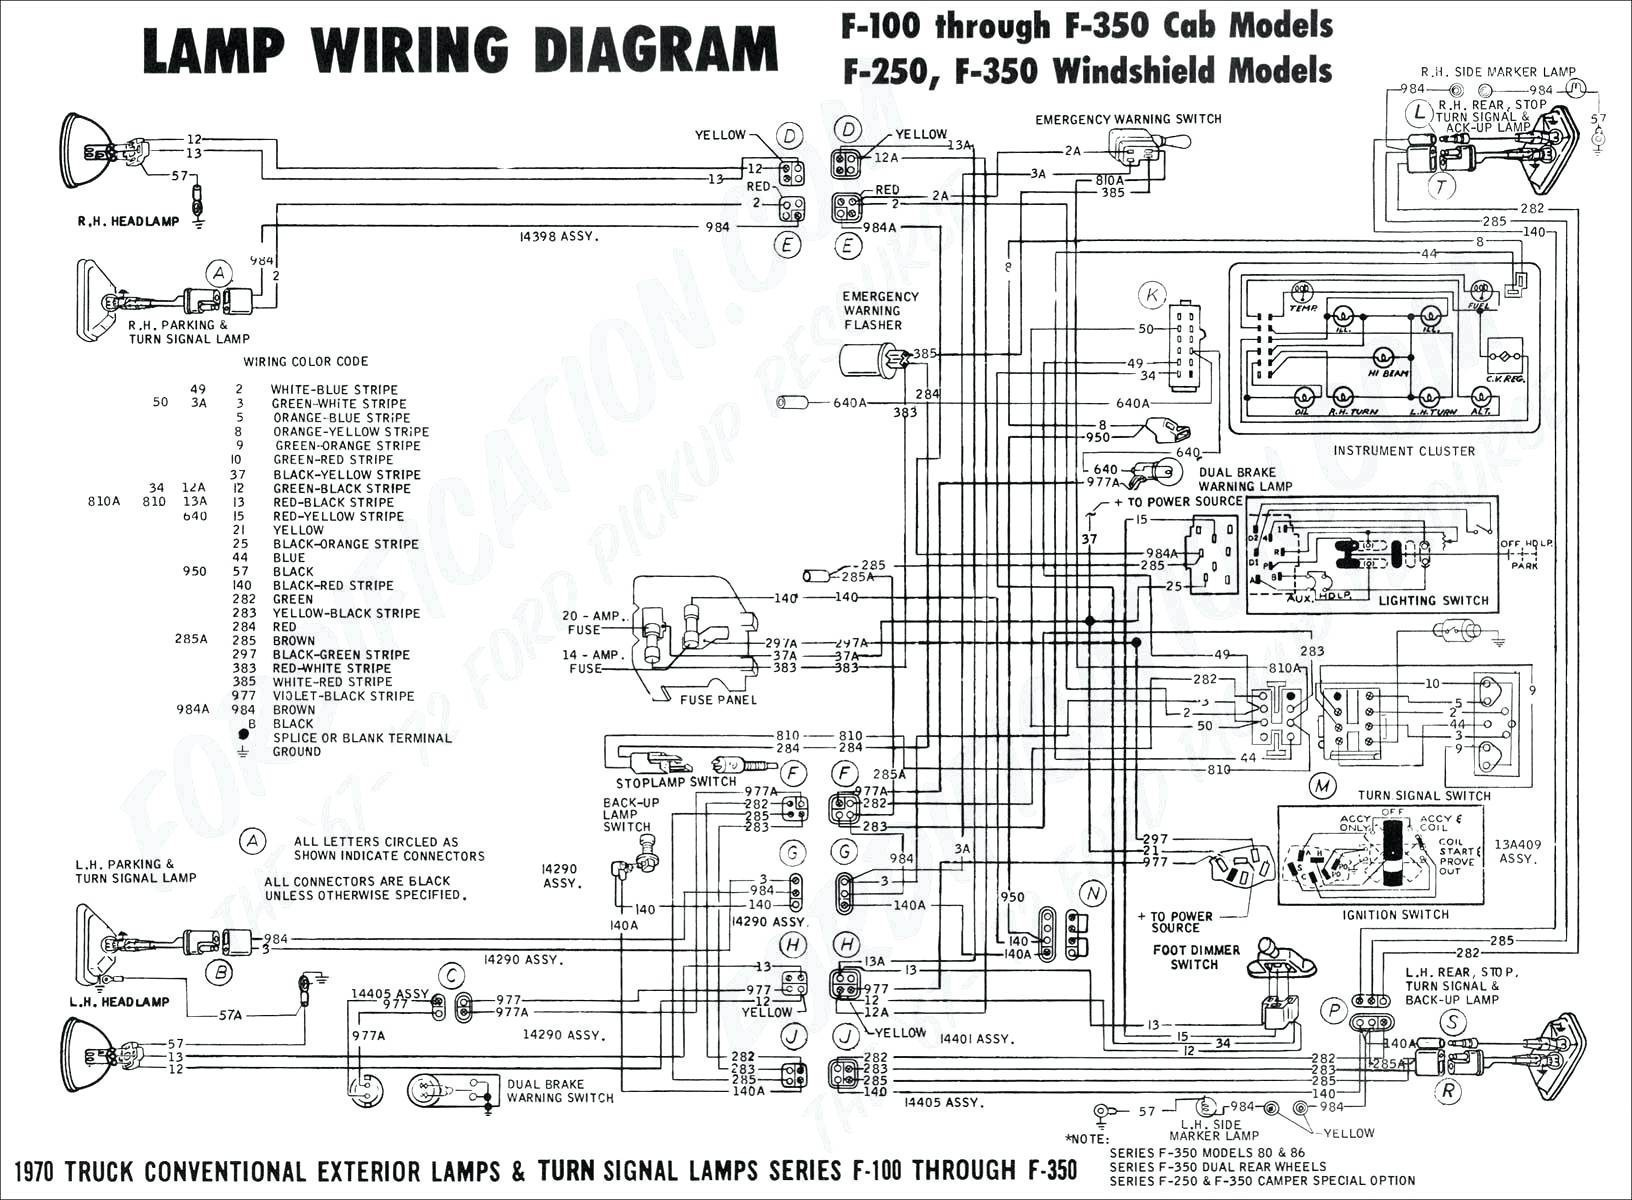 2006 Chevy Silverado Tail Light Wiring Diagram from static-cdn.imageservice.cloud